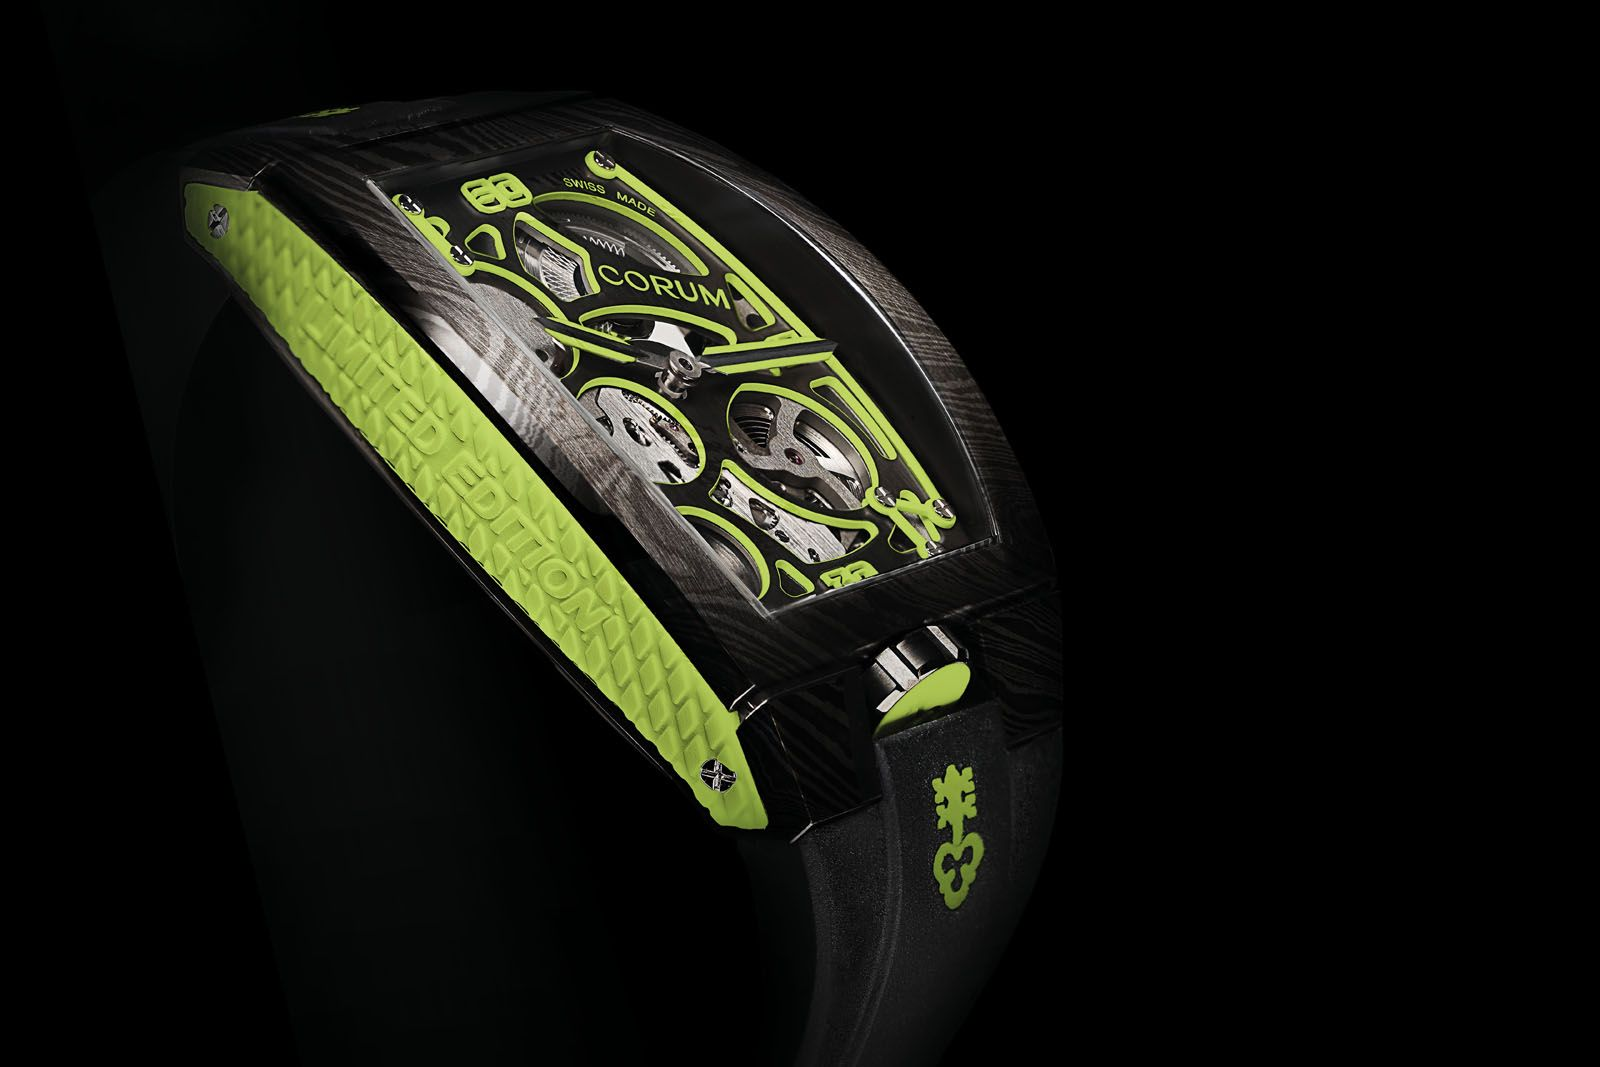 The futuristic look as well as accents such as lime green on the Lab 01 makes for a major deviation from the typical classical aesthetics of Corum's timepieces